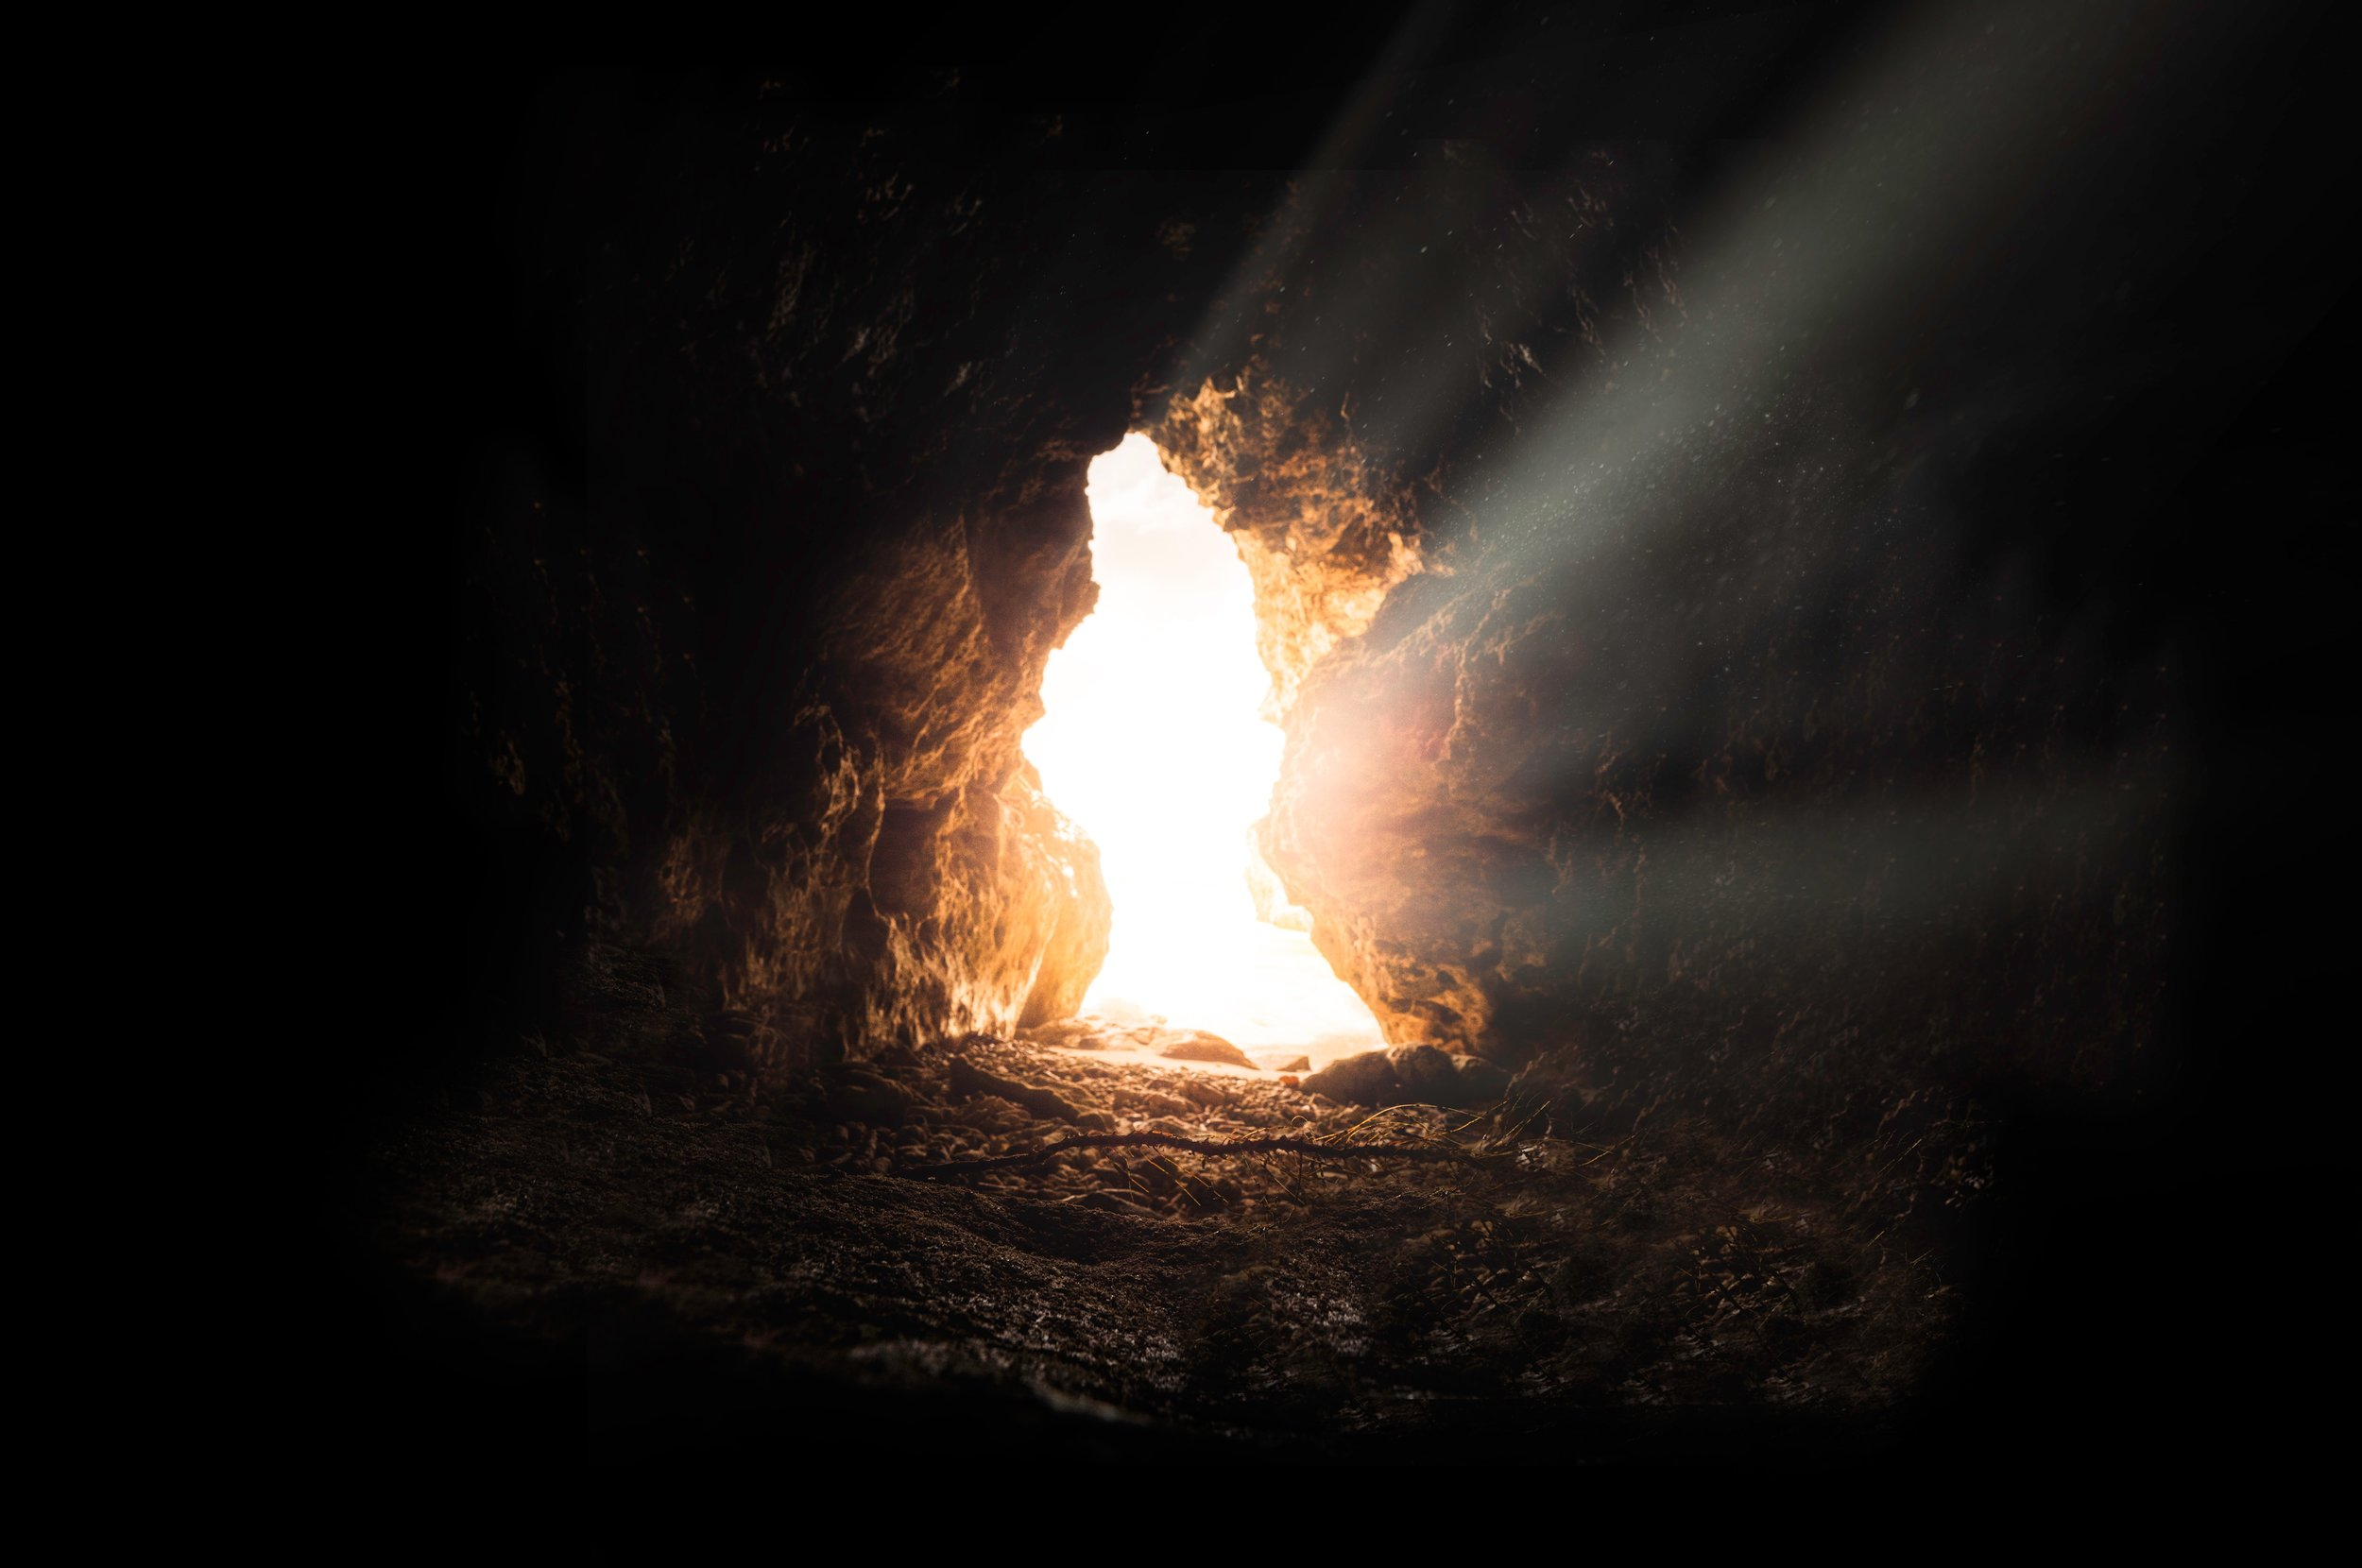 A photograph of light entering through a cave mouth